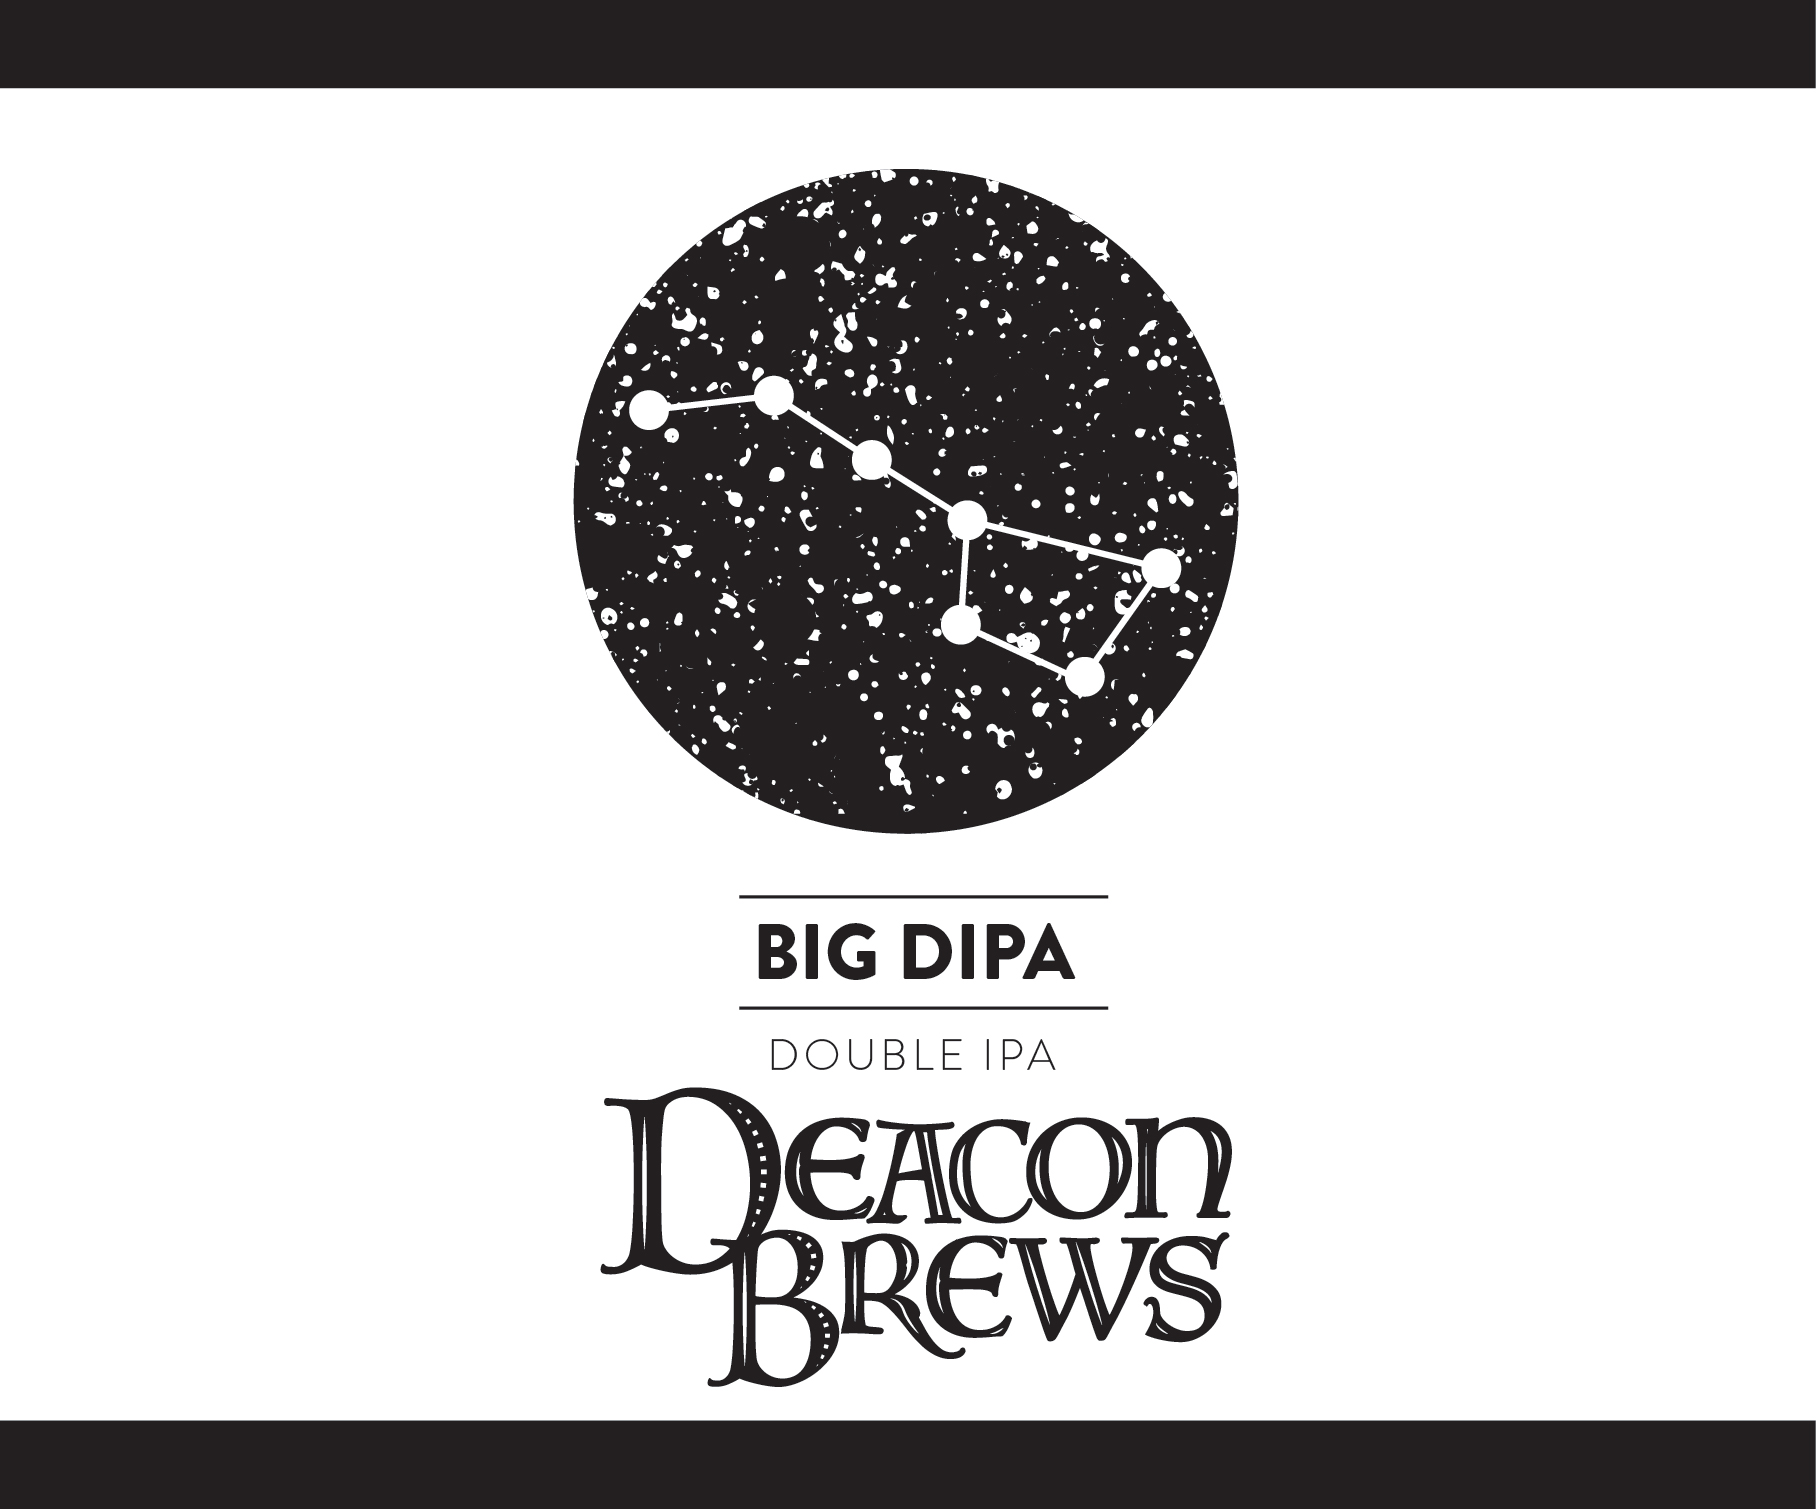 AveryLabels_Big DIPA.jpg